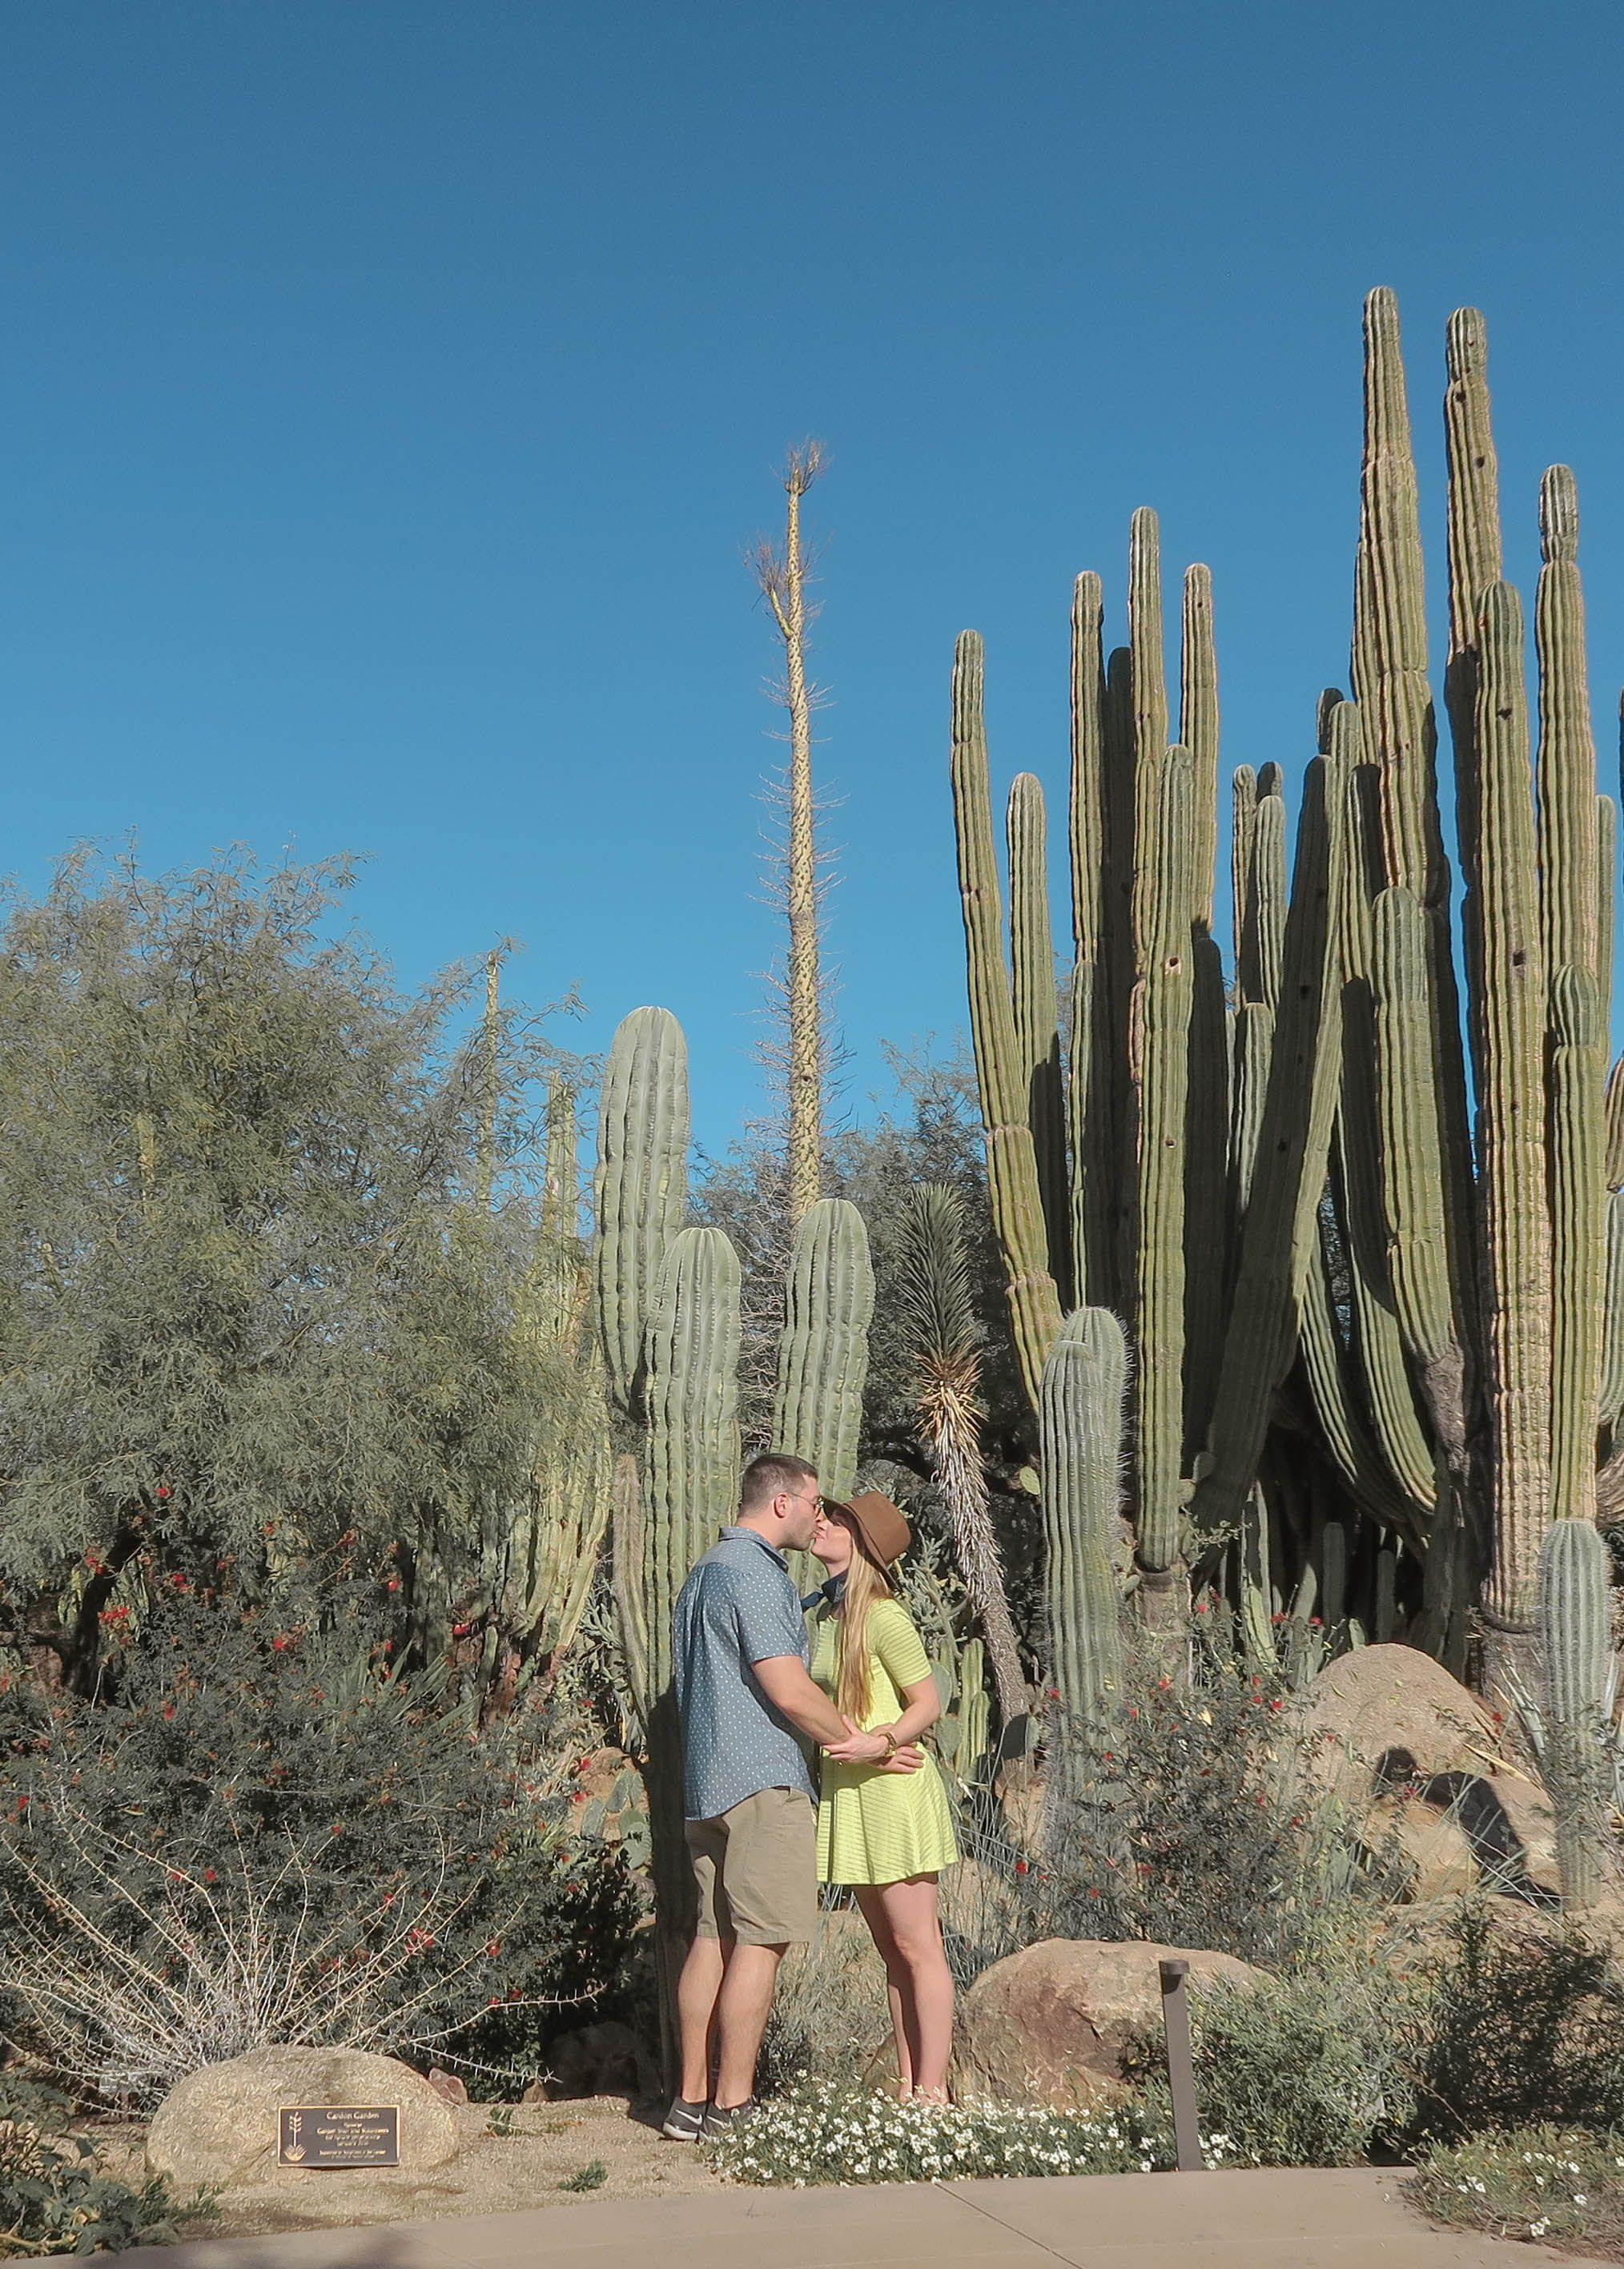 The Desert Botanical Gardens In Phoenix Are Amazing. Spend A Few Hours Here  Seeing The Botanical Plants. Be Sure To Get Your Free Ticket From The  Library!